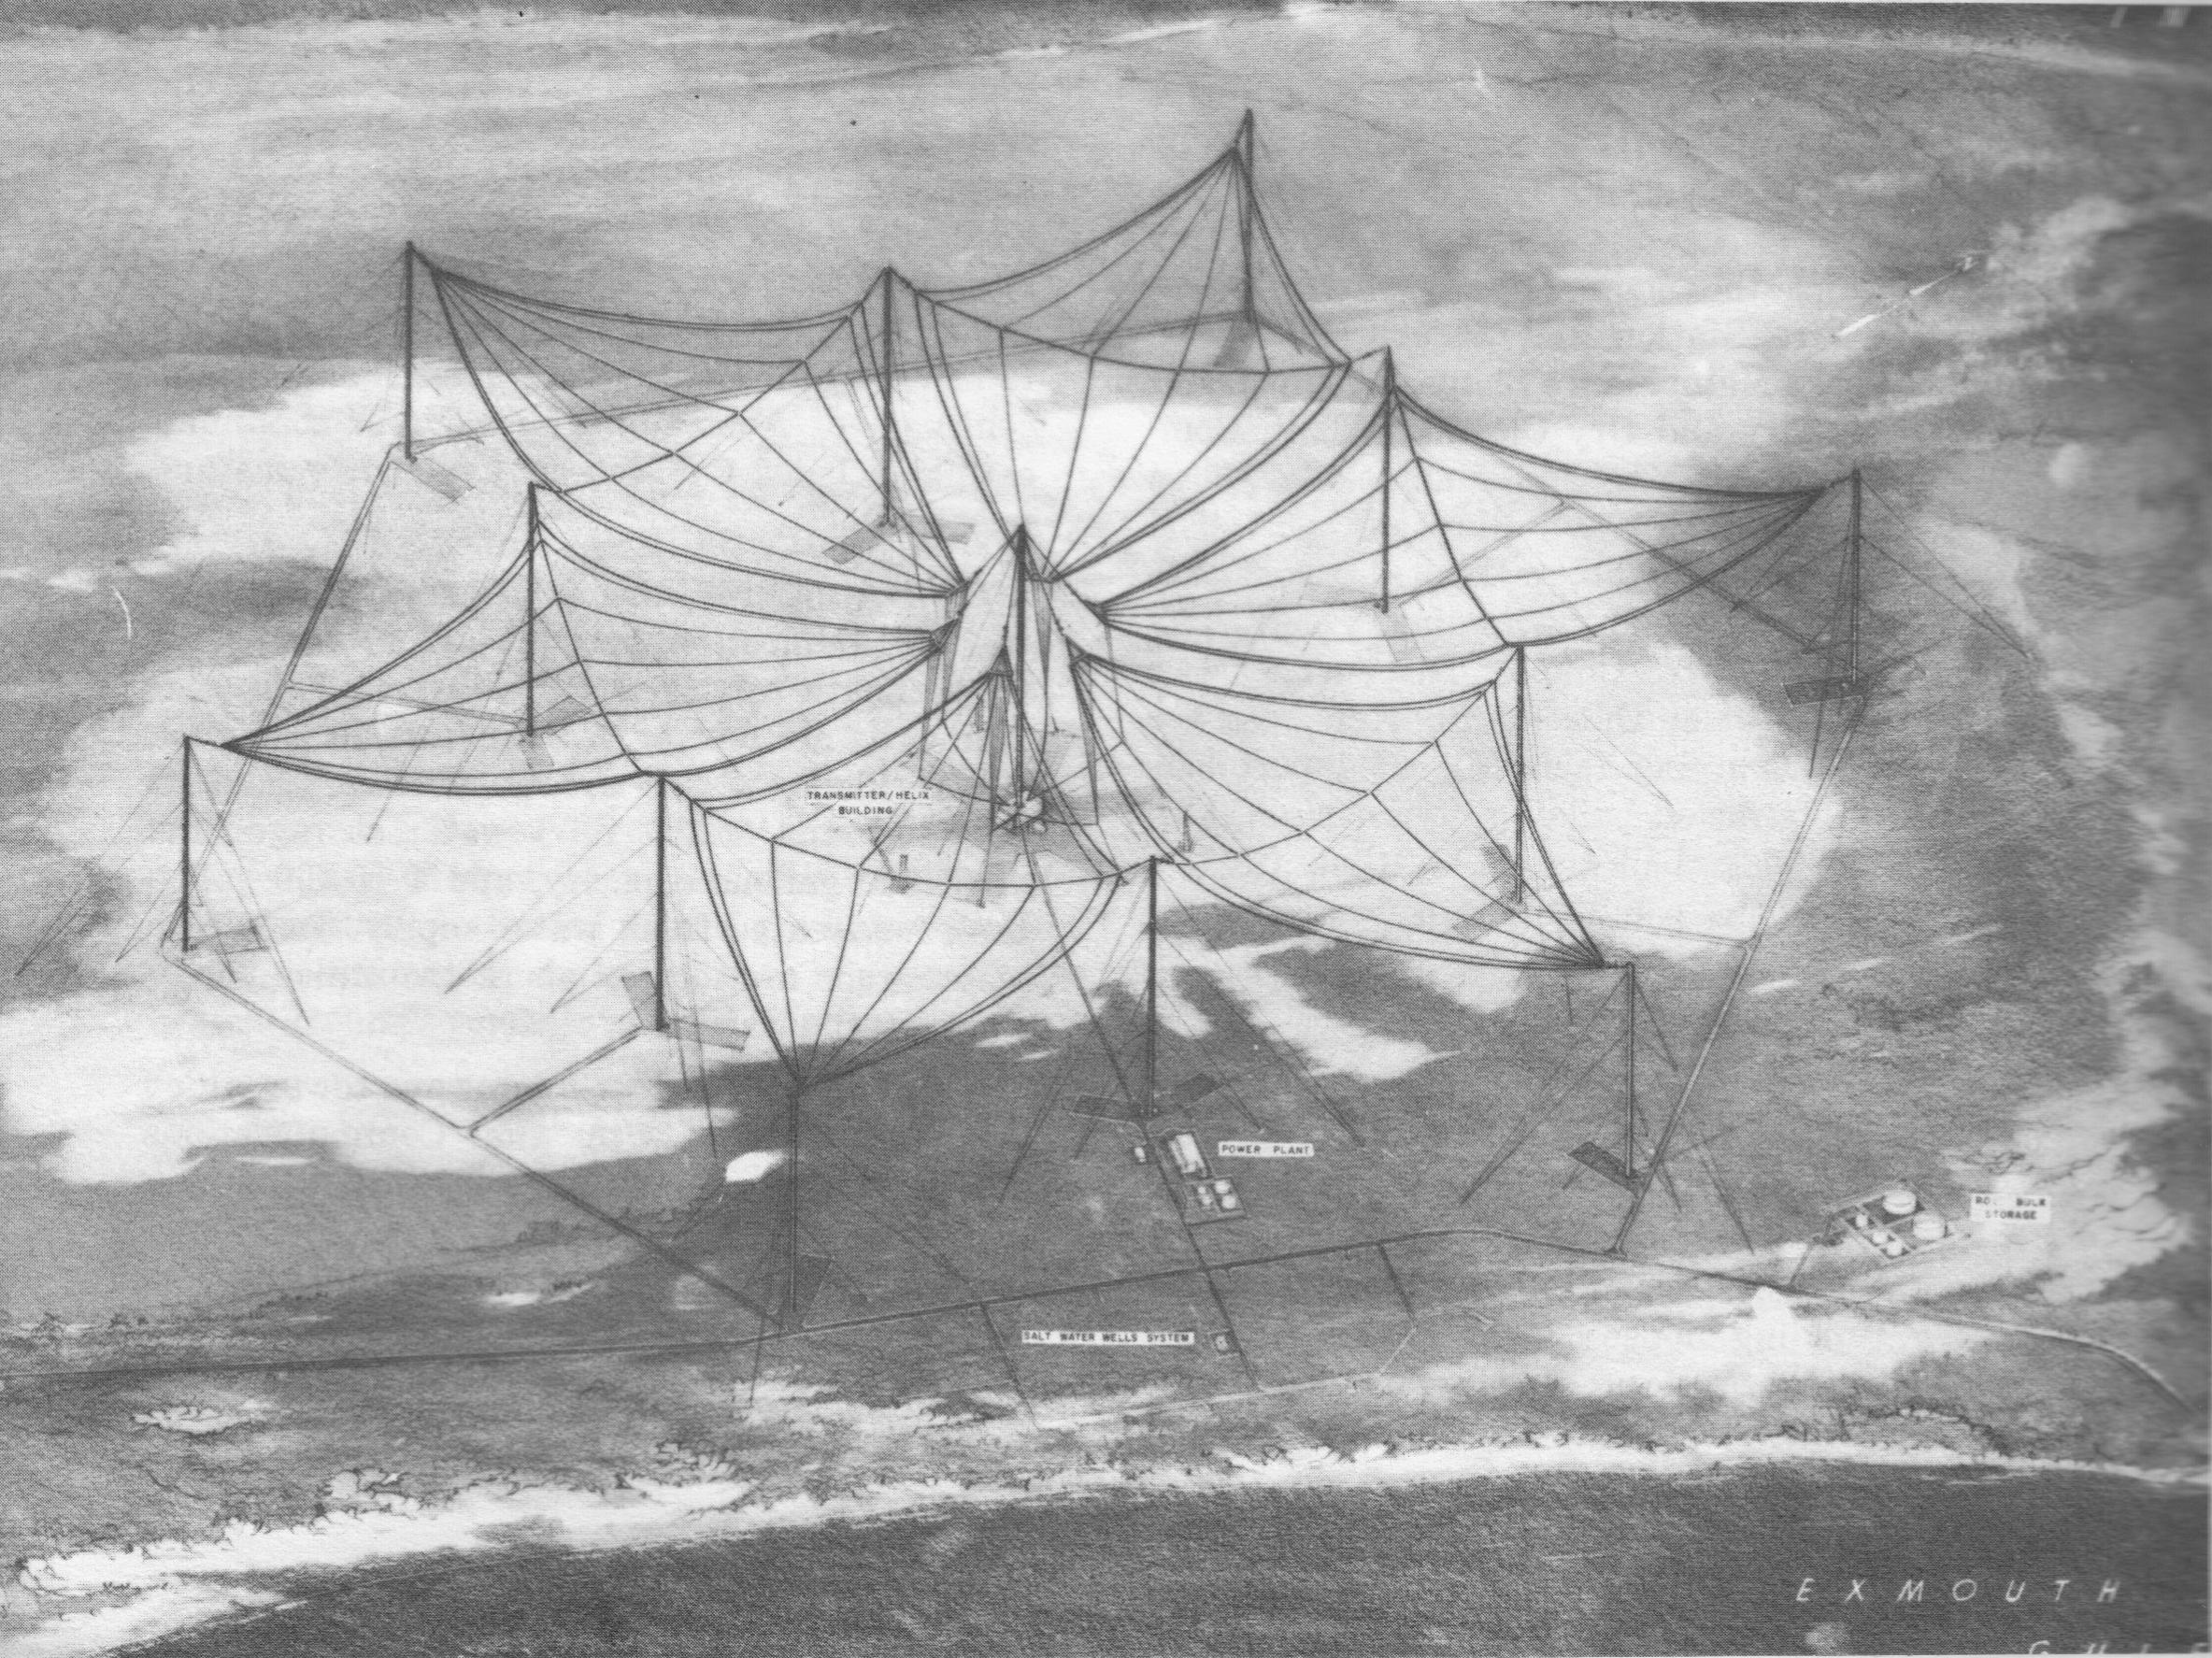 Harold E Holt Naval Communication Station Around Exmouth, NAVCOMMSTA North West Cape (renamed Harold E. Holt 9/68), Exmouth ...